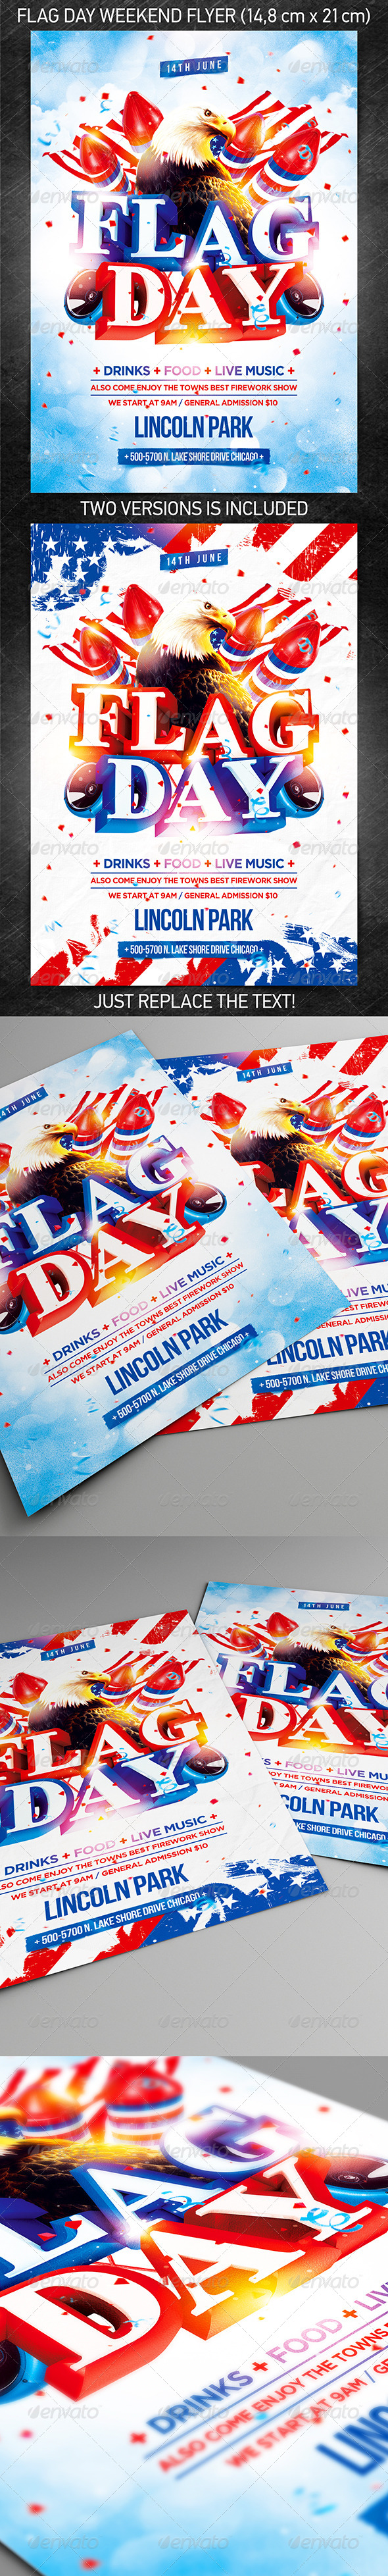 Flag Day Weekend Party Flyer